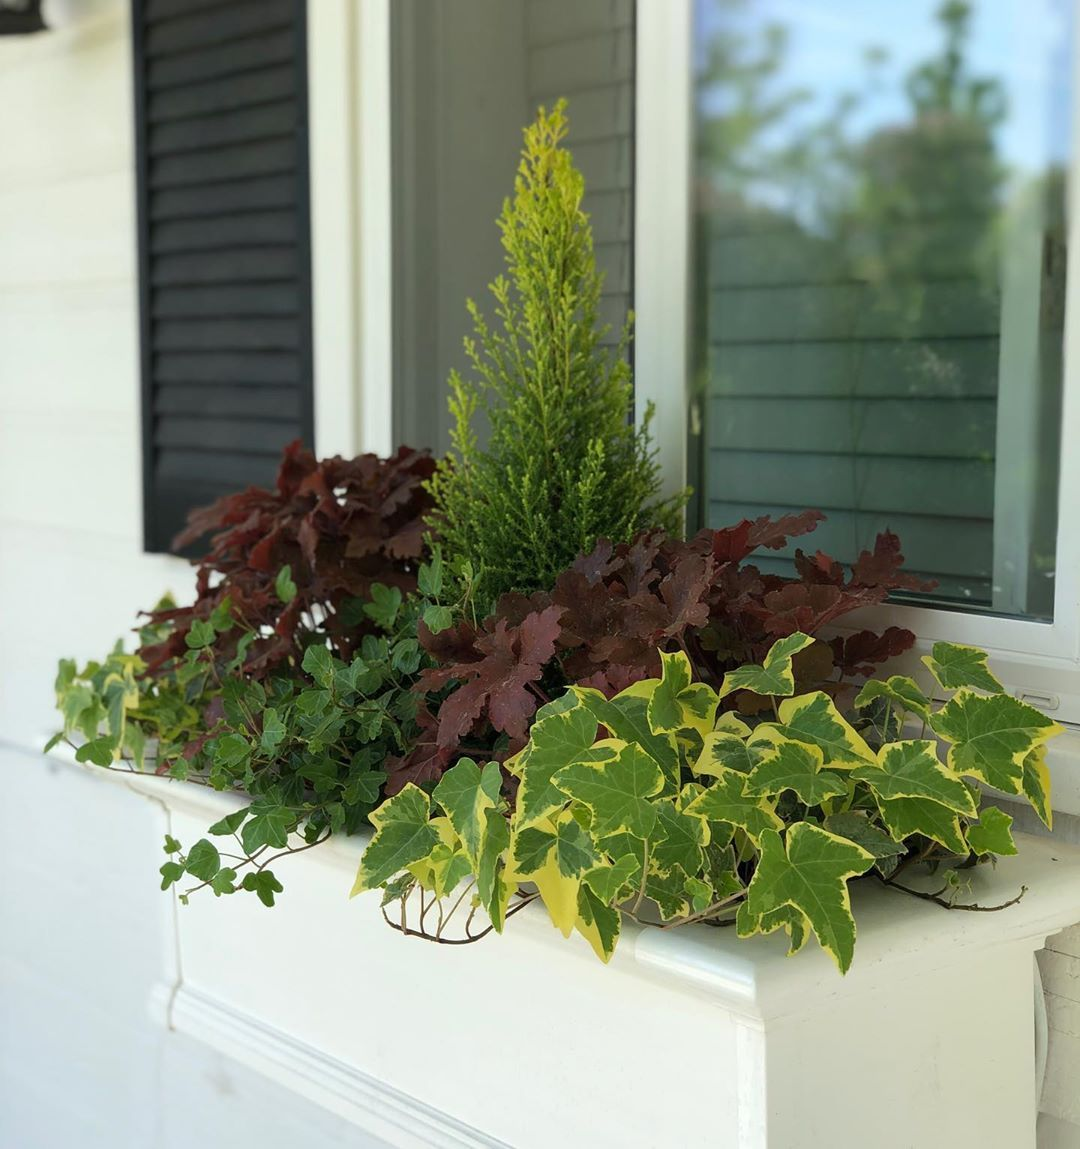 I Just Put Together This Window Box For 0 Dollars 0 This Year